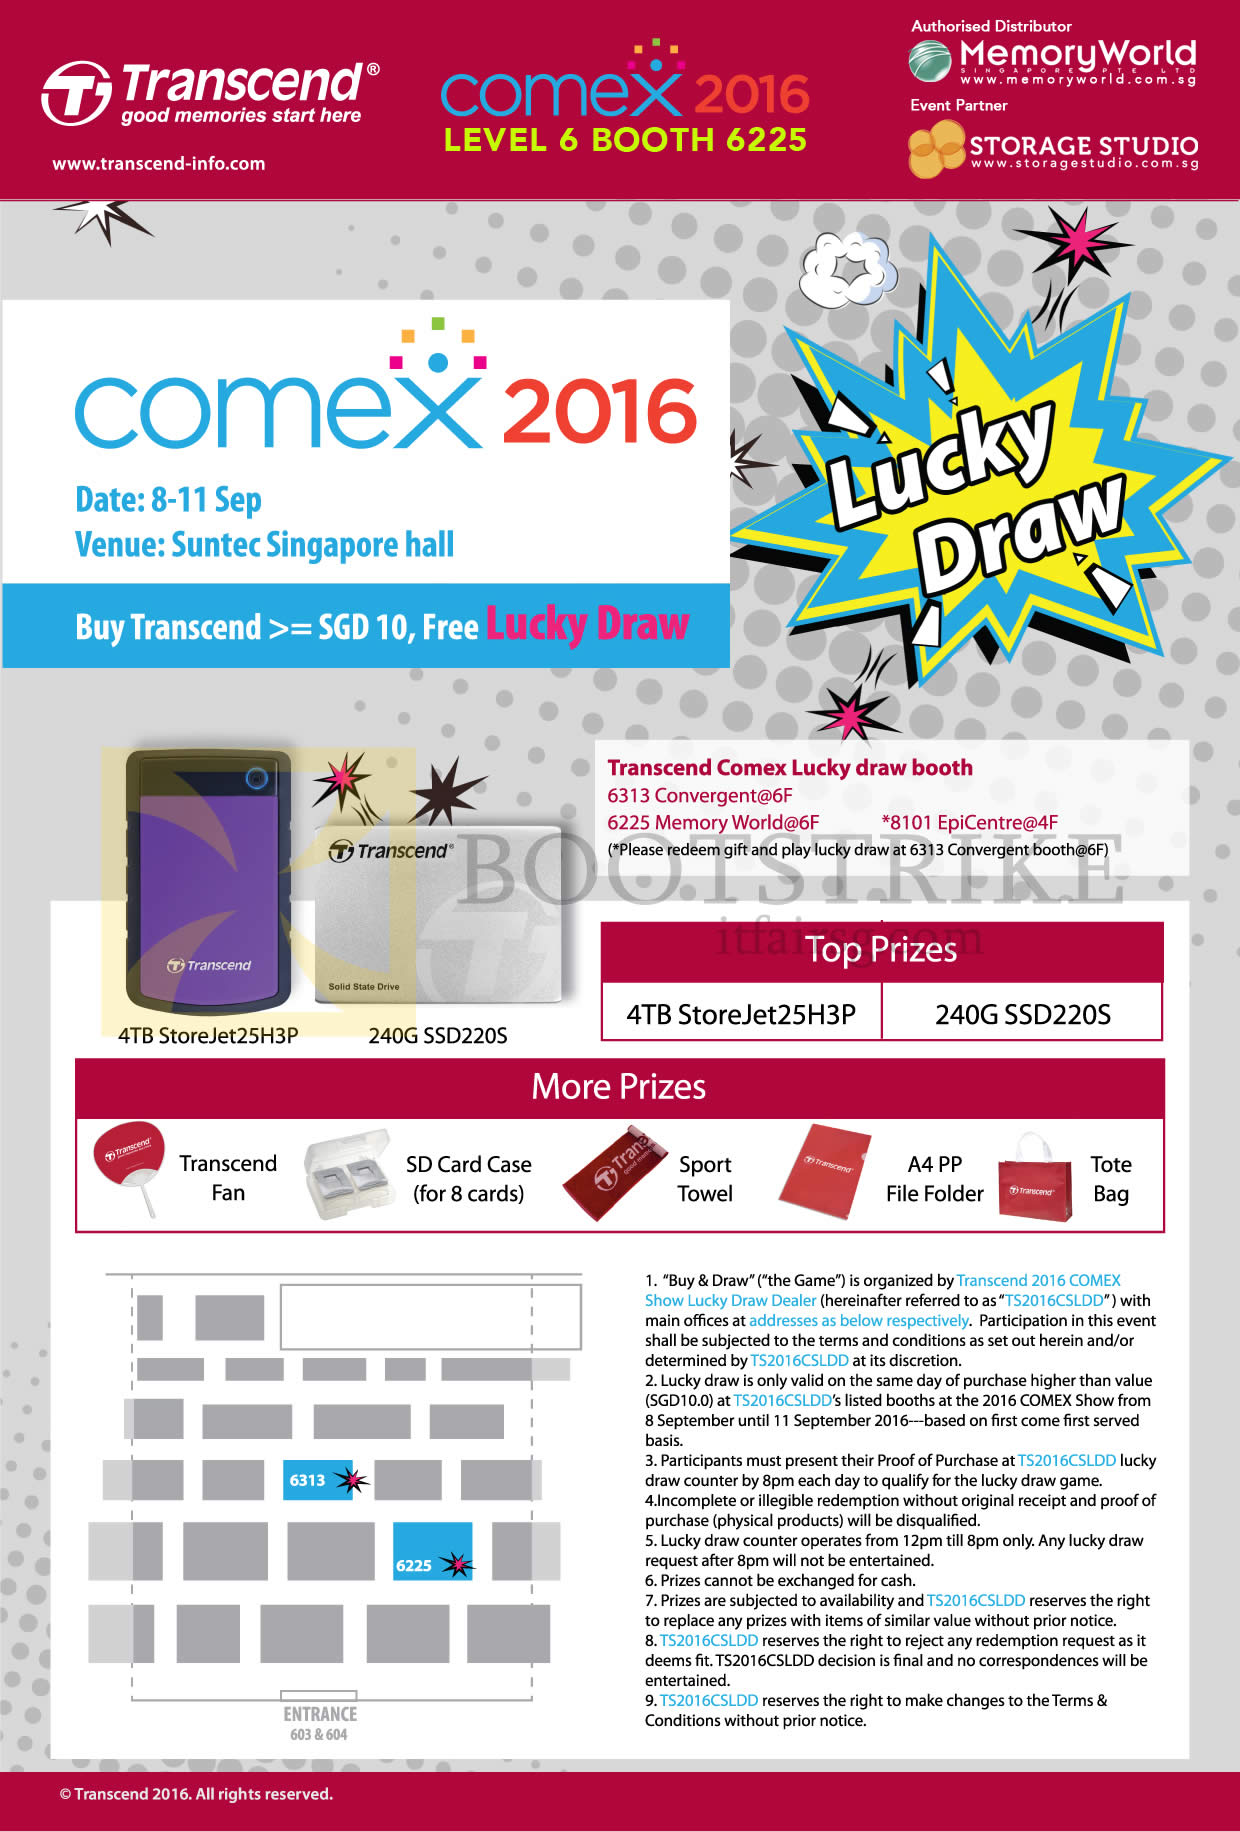 COMEX 2016 price list image brochure of Transcend Lucky Draw, Prizes